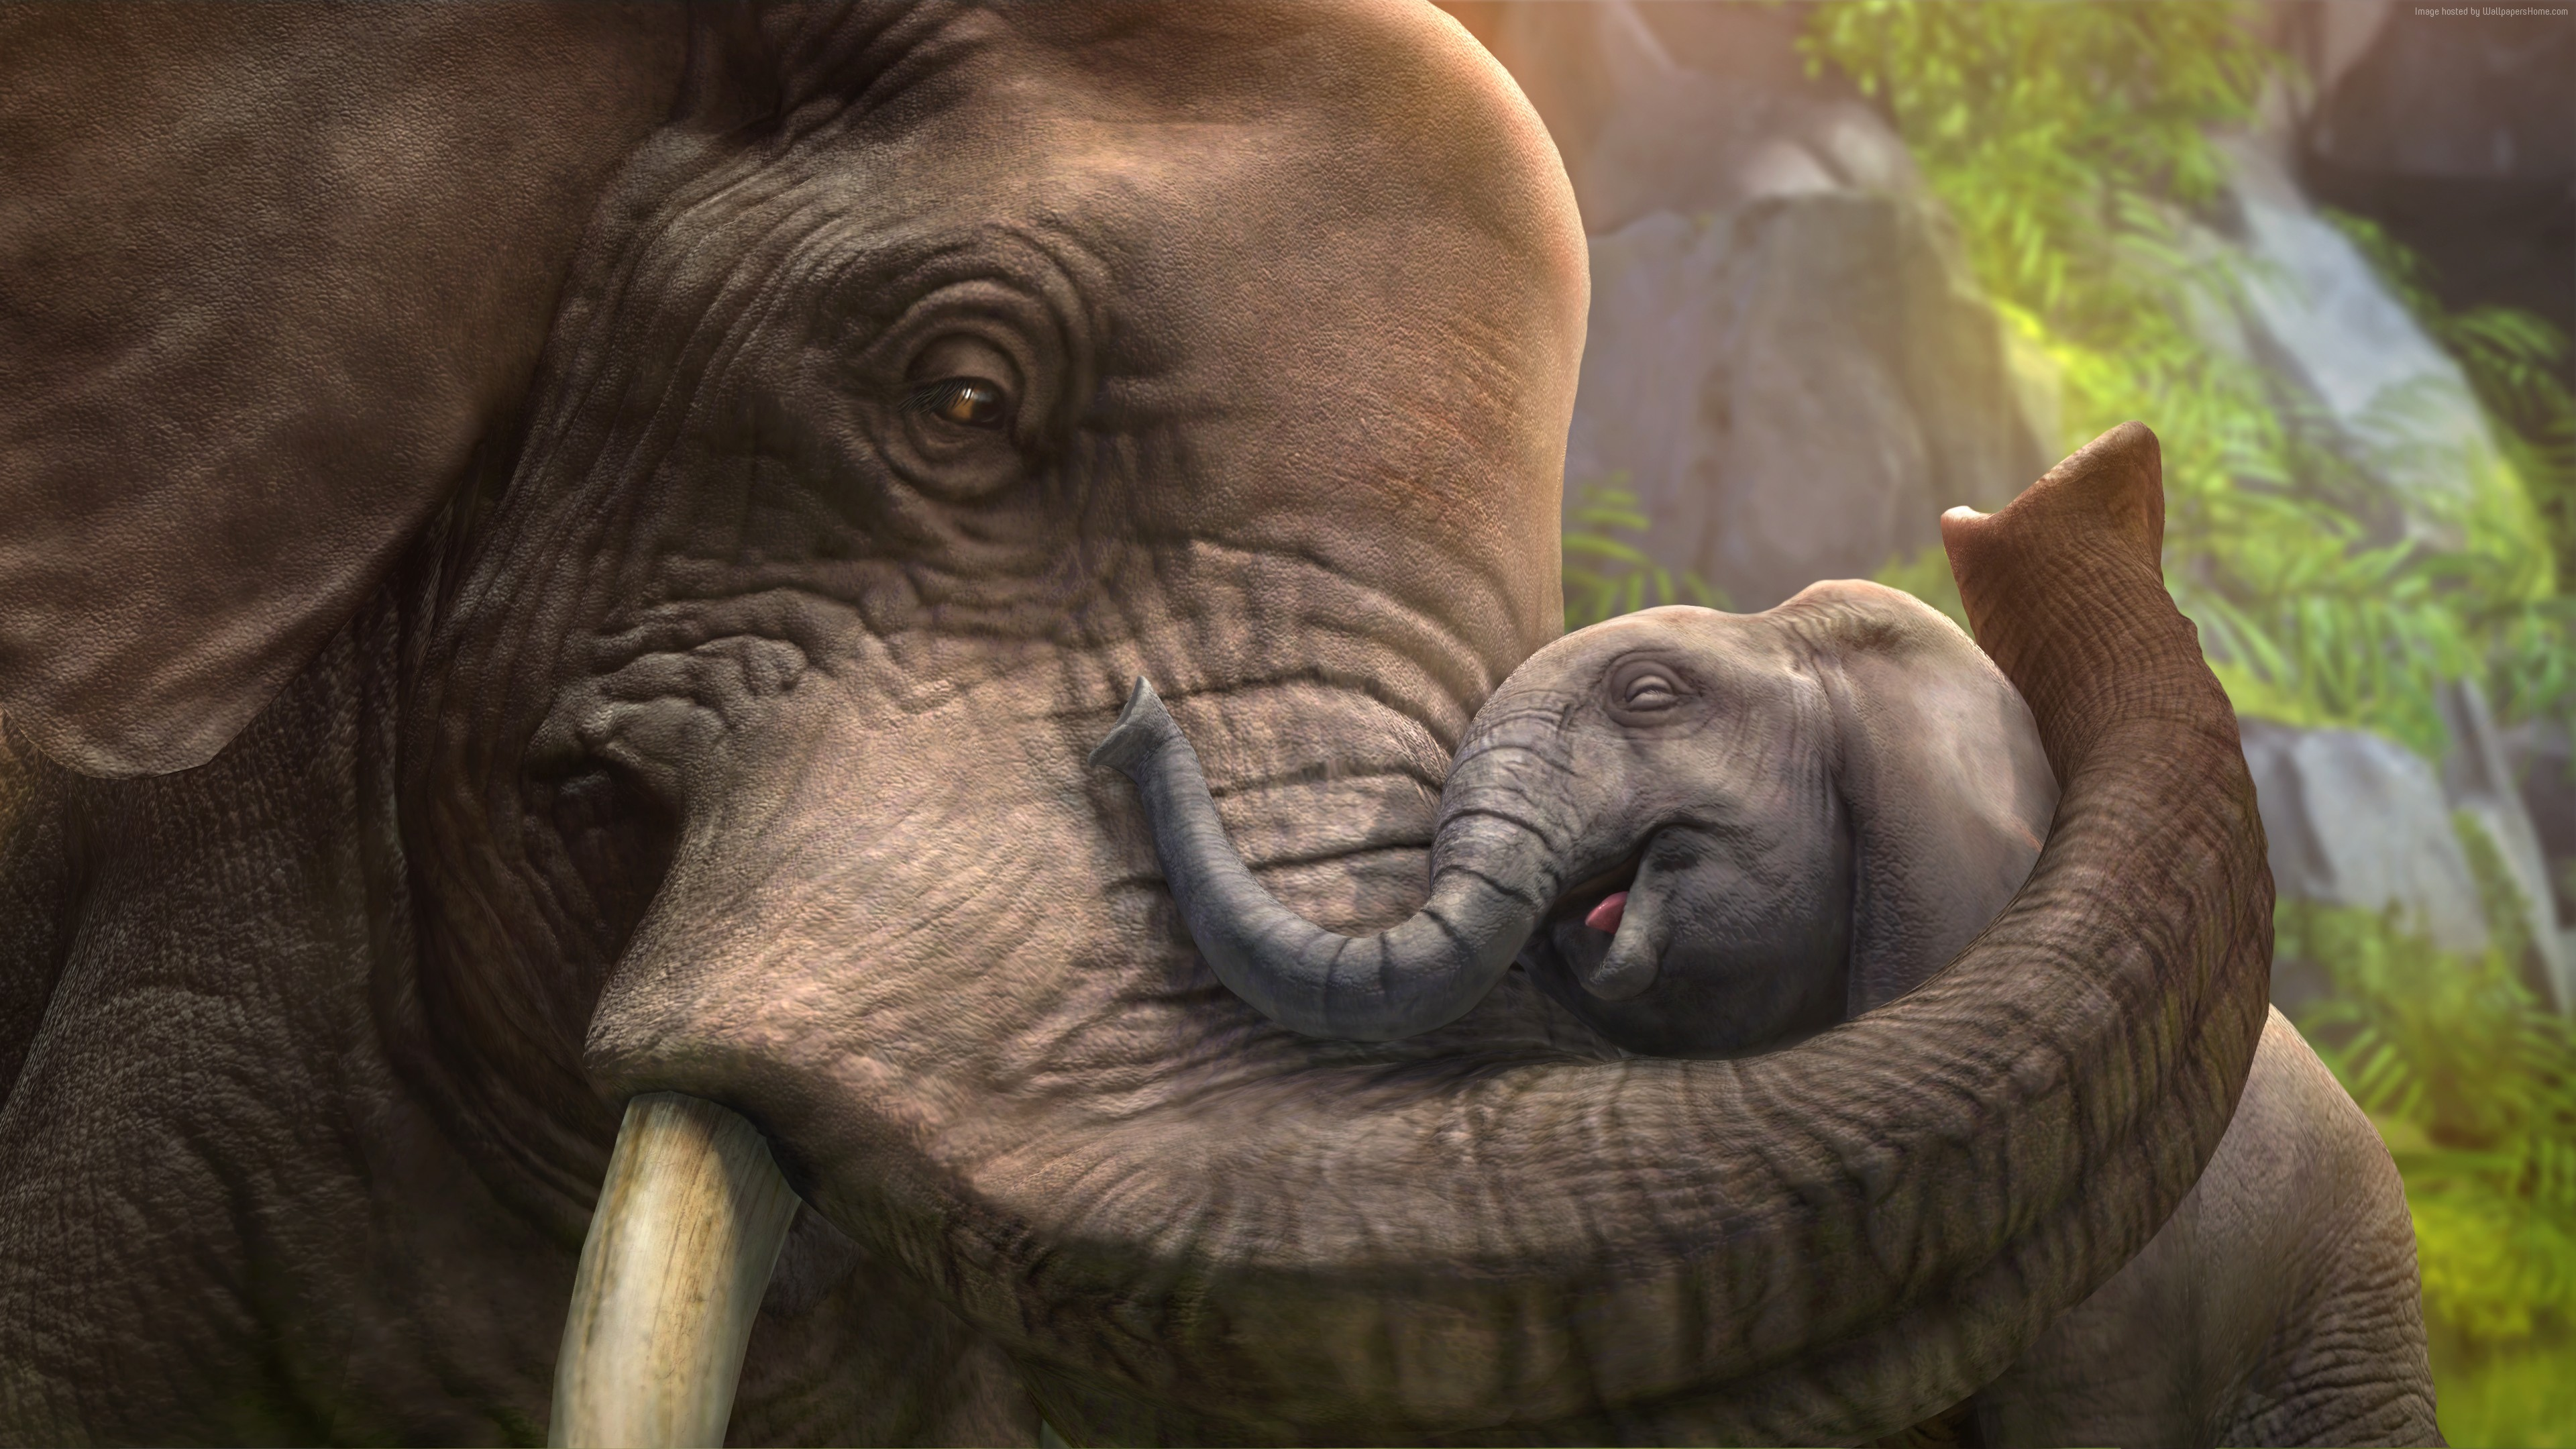 Wallpaper Elephant, cub, zoo tycoon, animals, grey, art, tourism, Animals